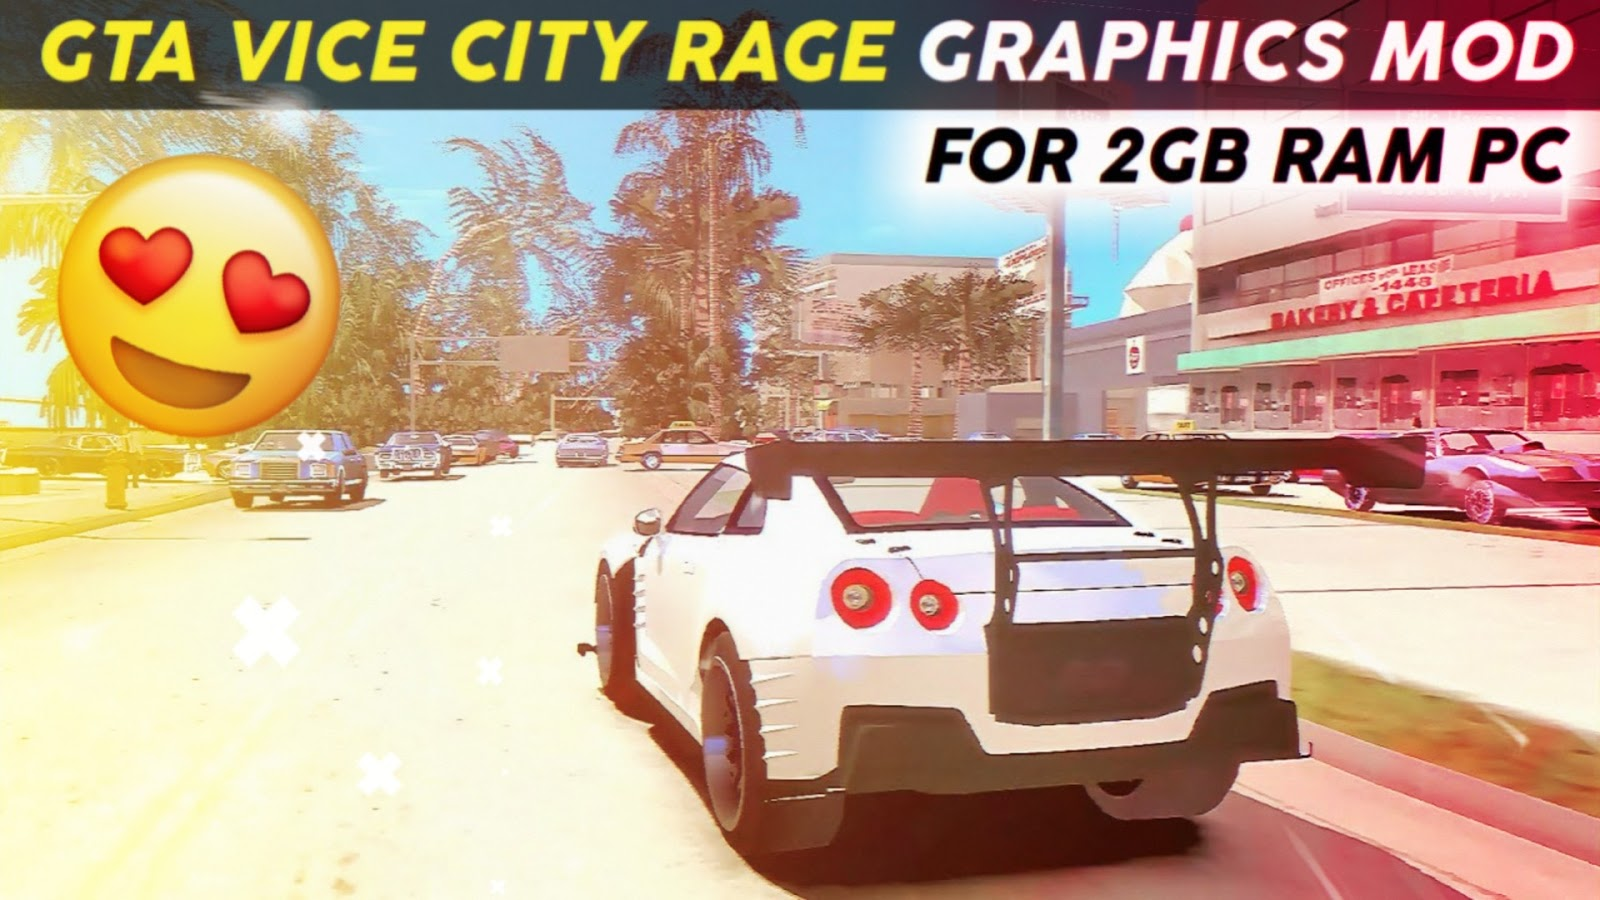 GTA Vice City - Ultra Realistic Graphics MOD for PC | Working in 2GB RAM